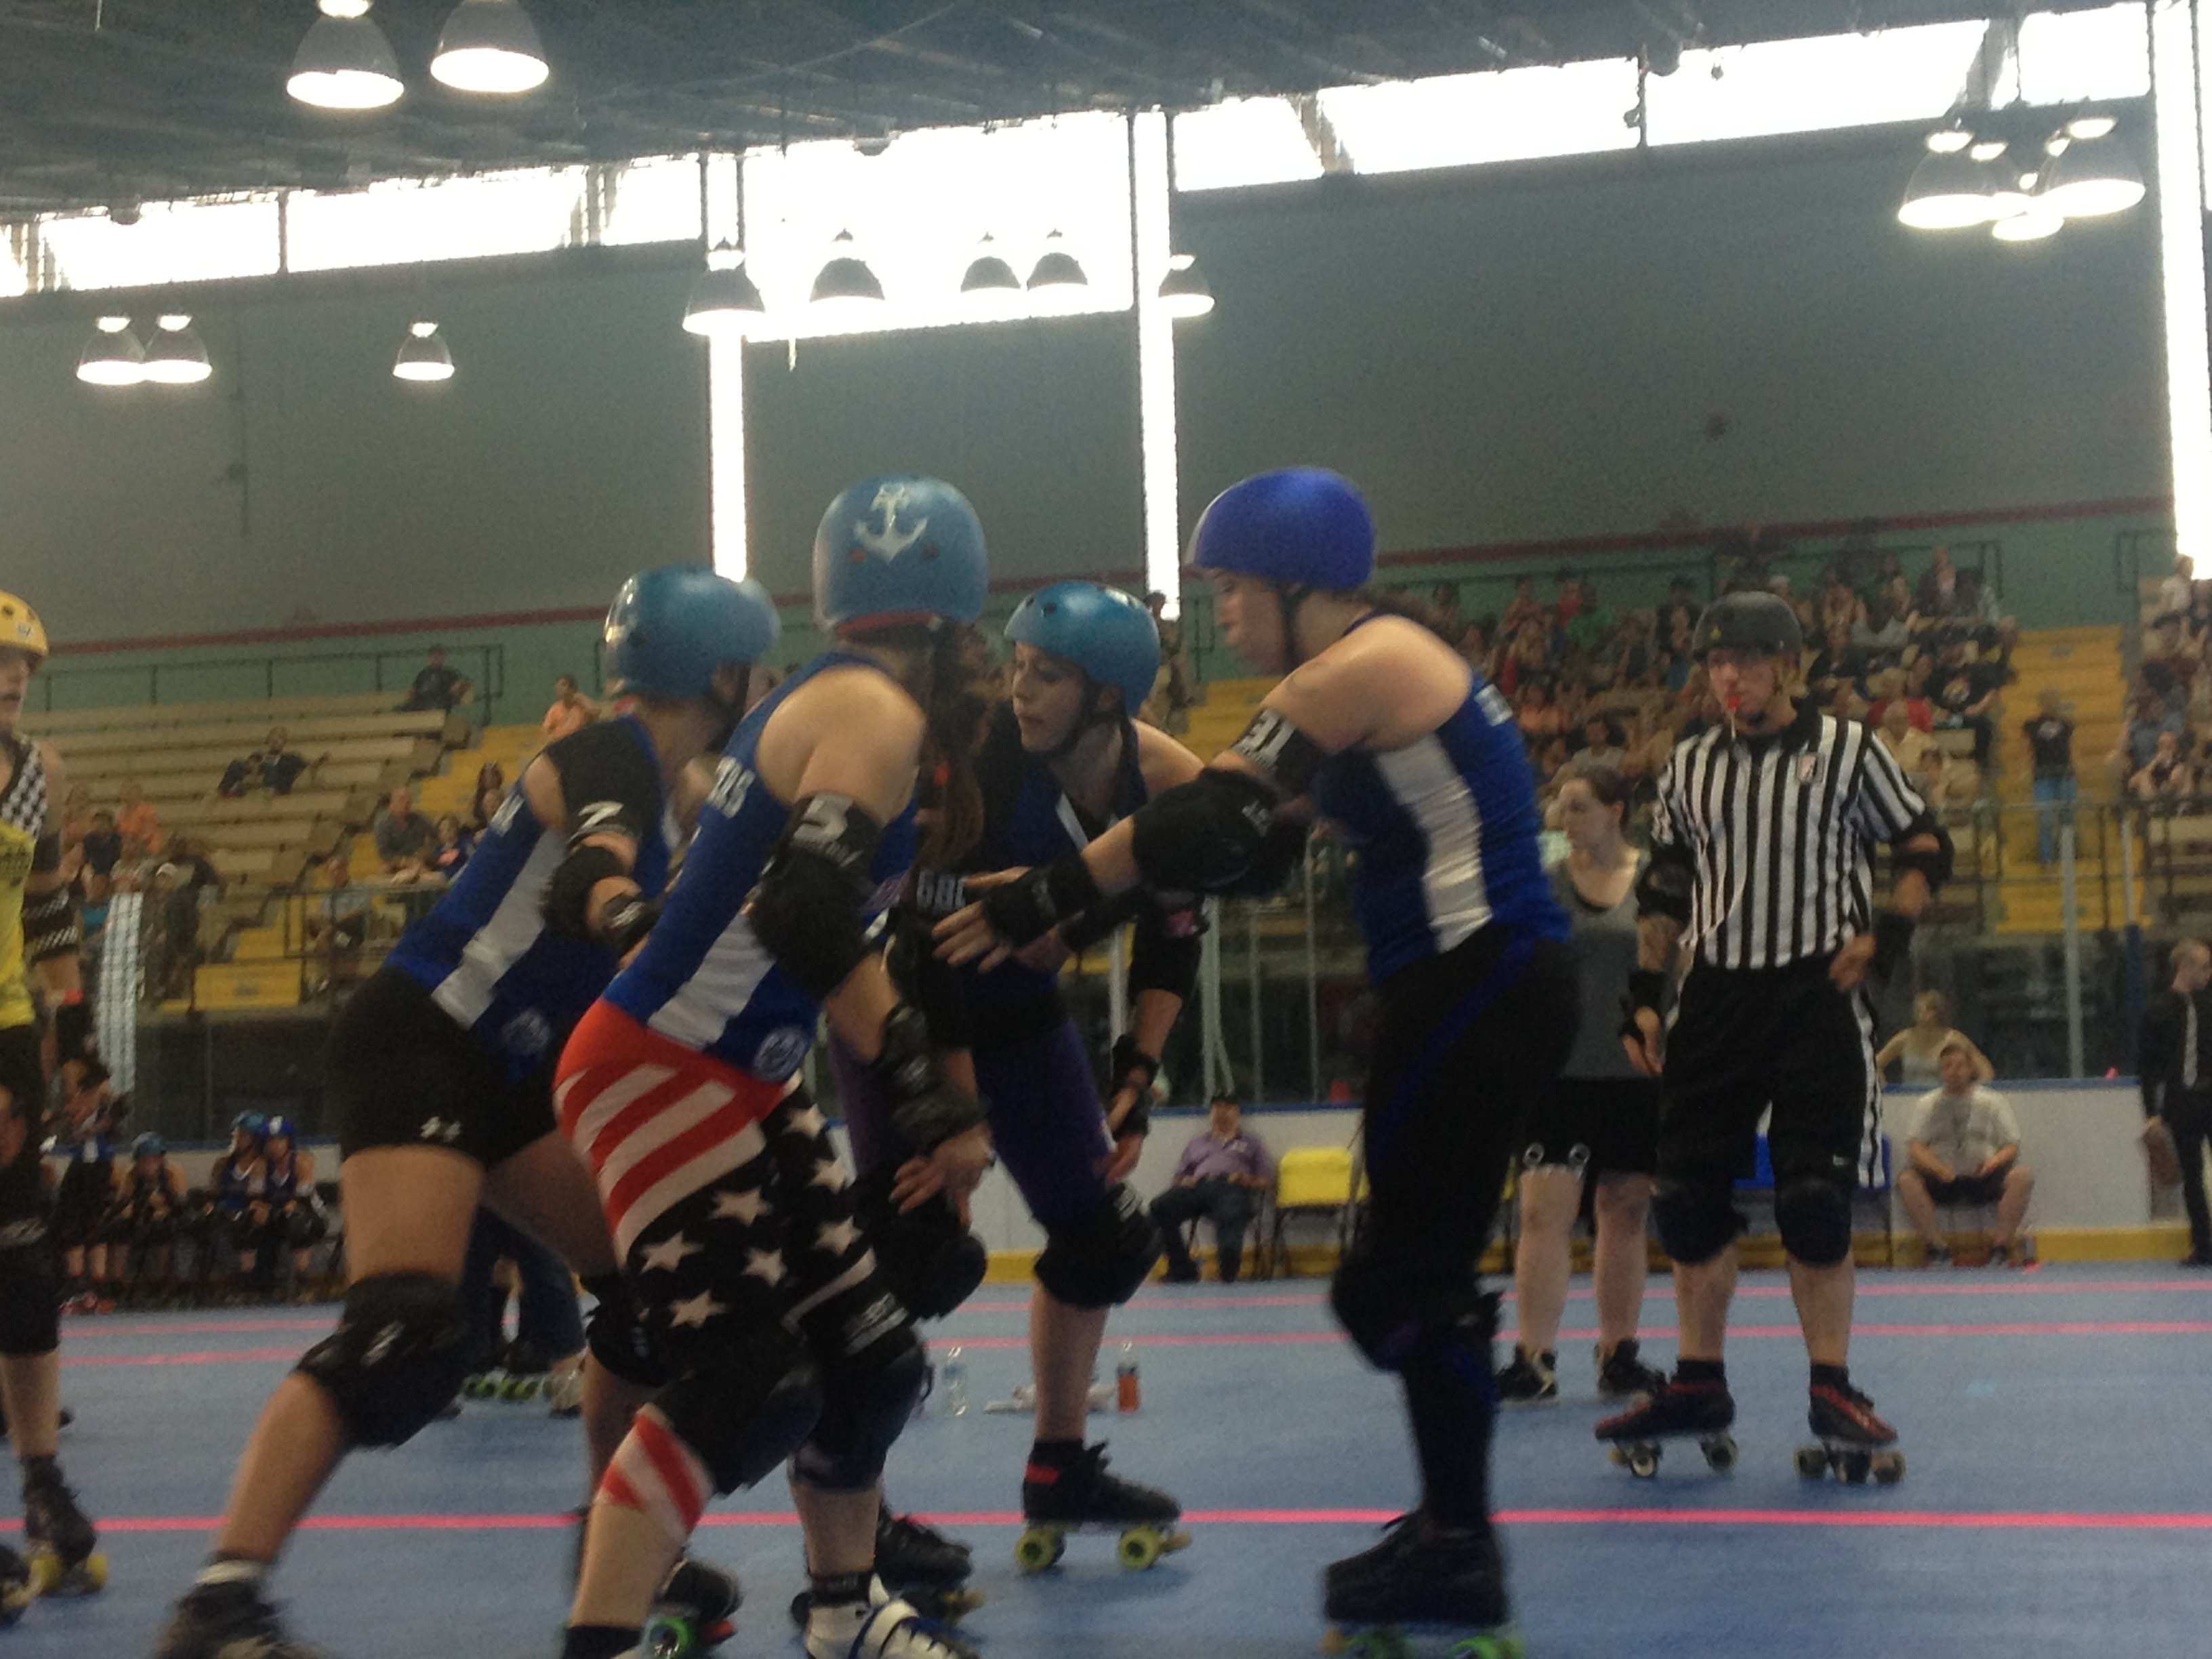 Coney Island Roller Derby.  We rooted for Brooklyn.  Naturally.